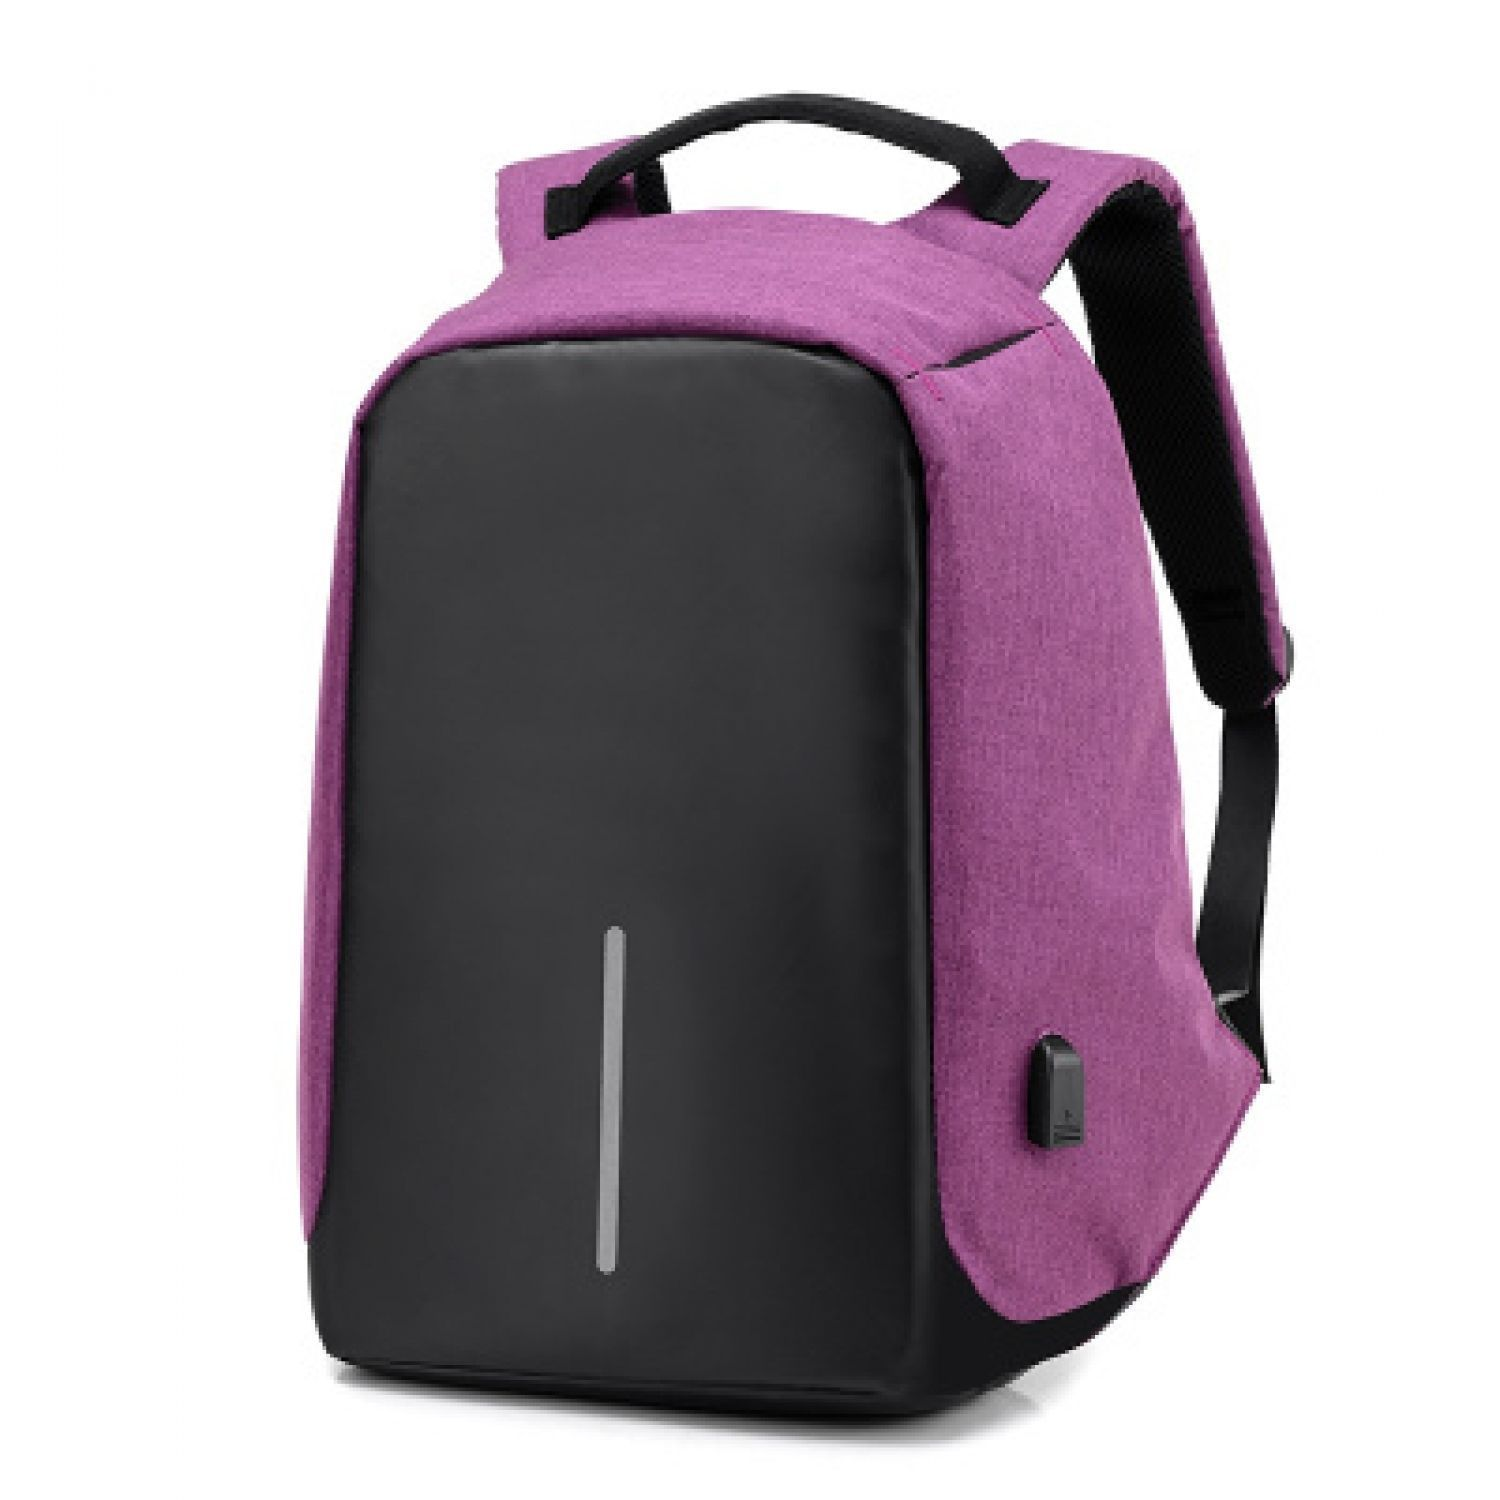 Anti Theft Smart School College Travel Backpack Safe Bag USB Charging Laptop New